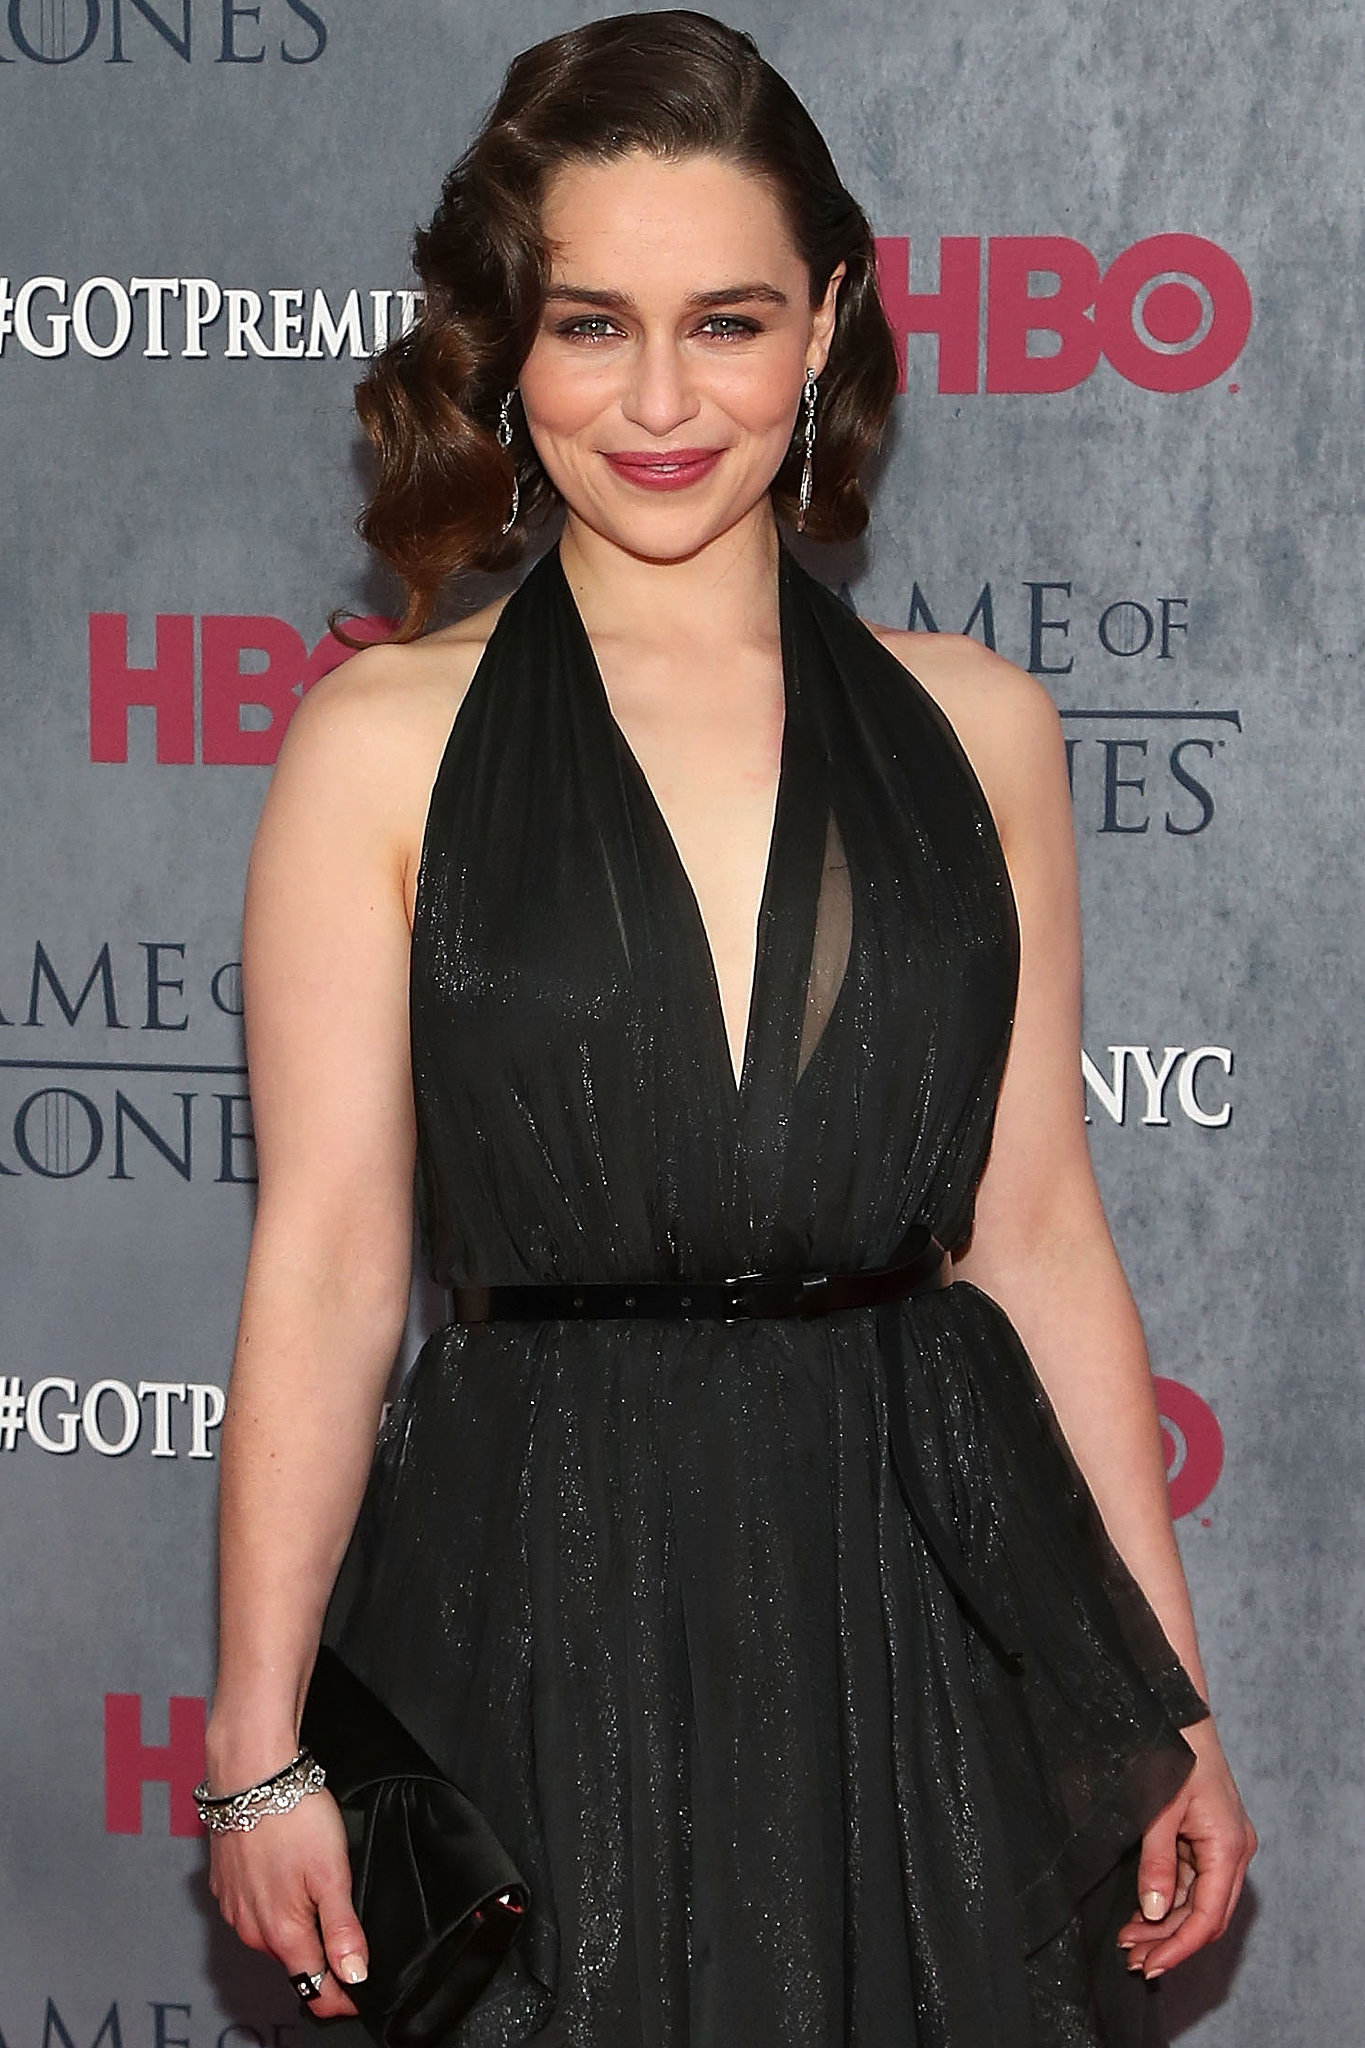 Emilia Clarke will star in Voice From the Stone, an indie thriller set in the 1950s.